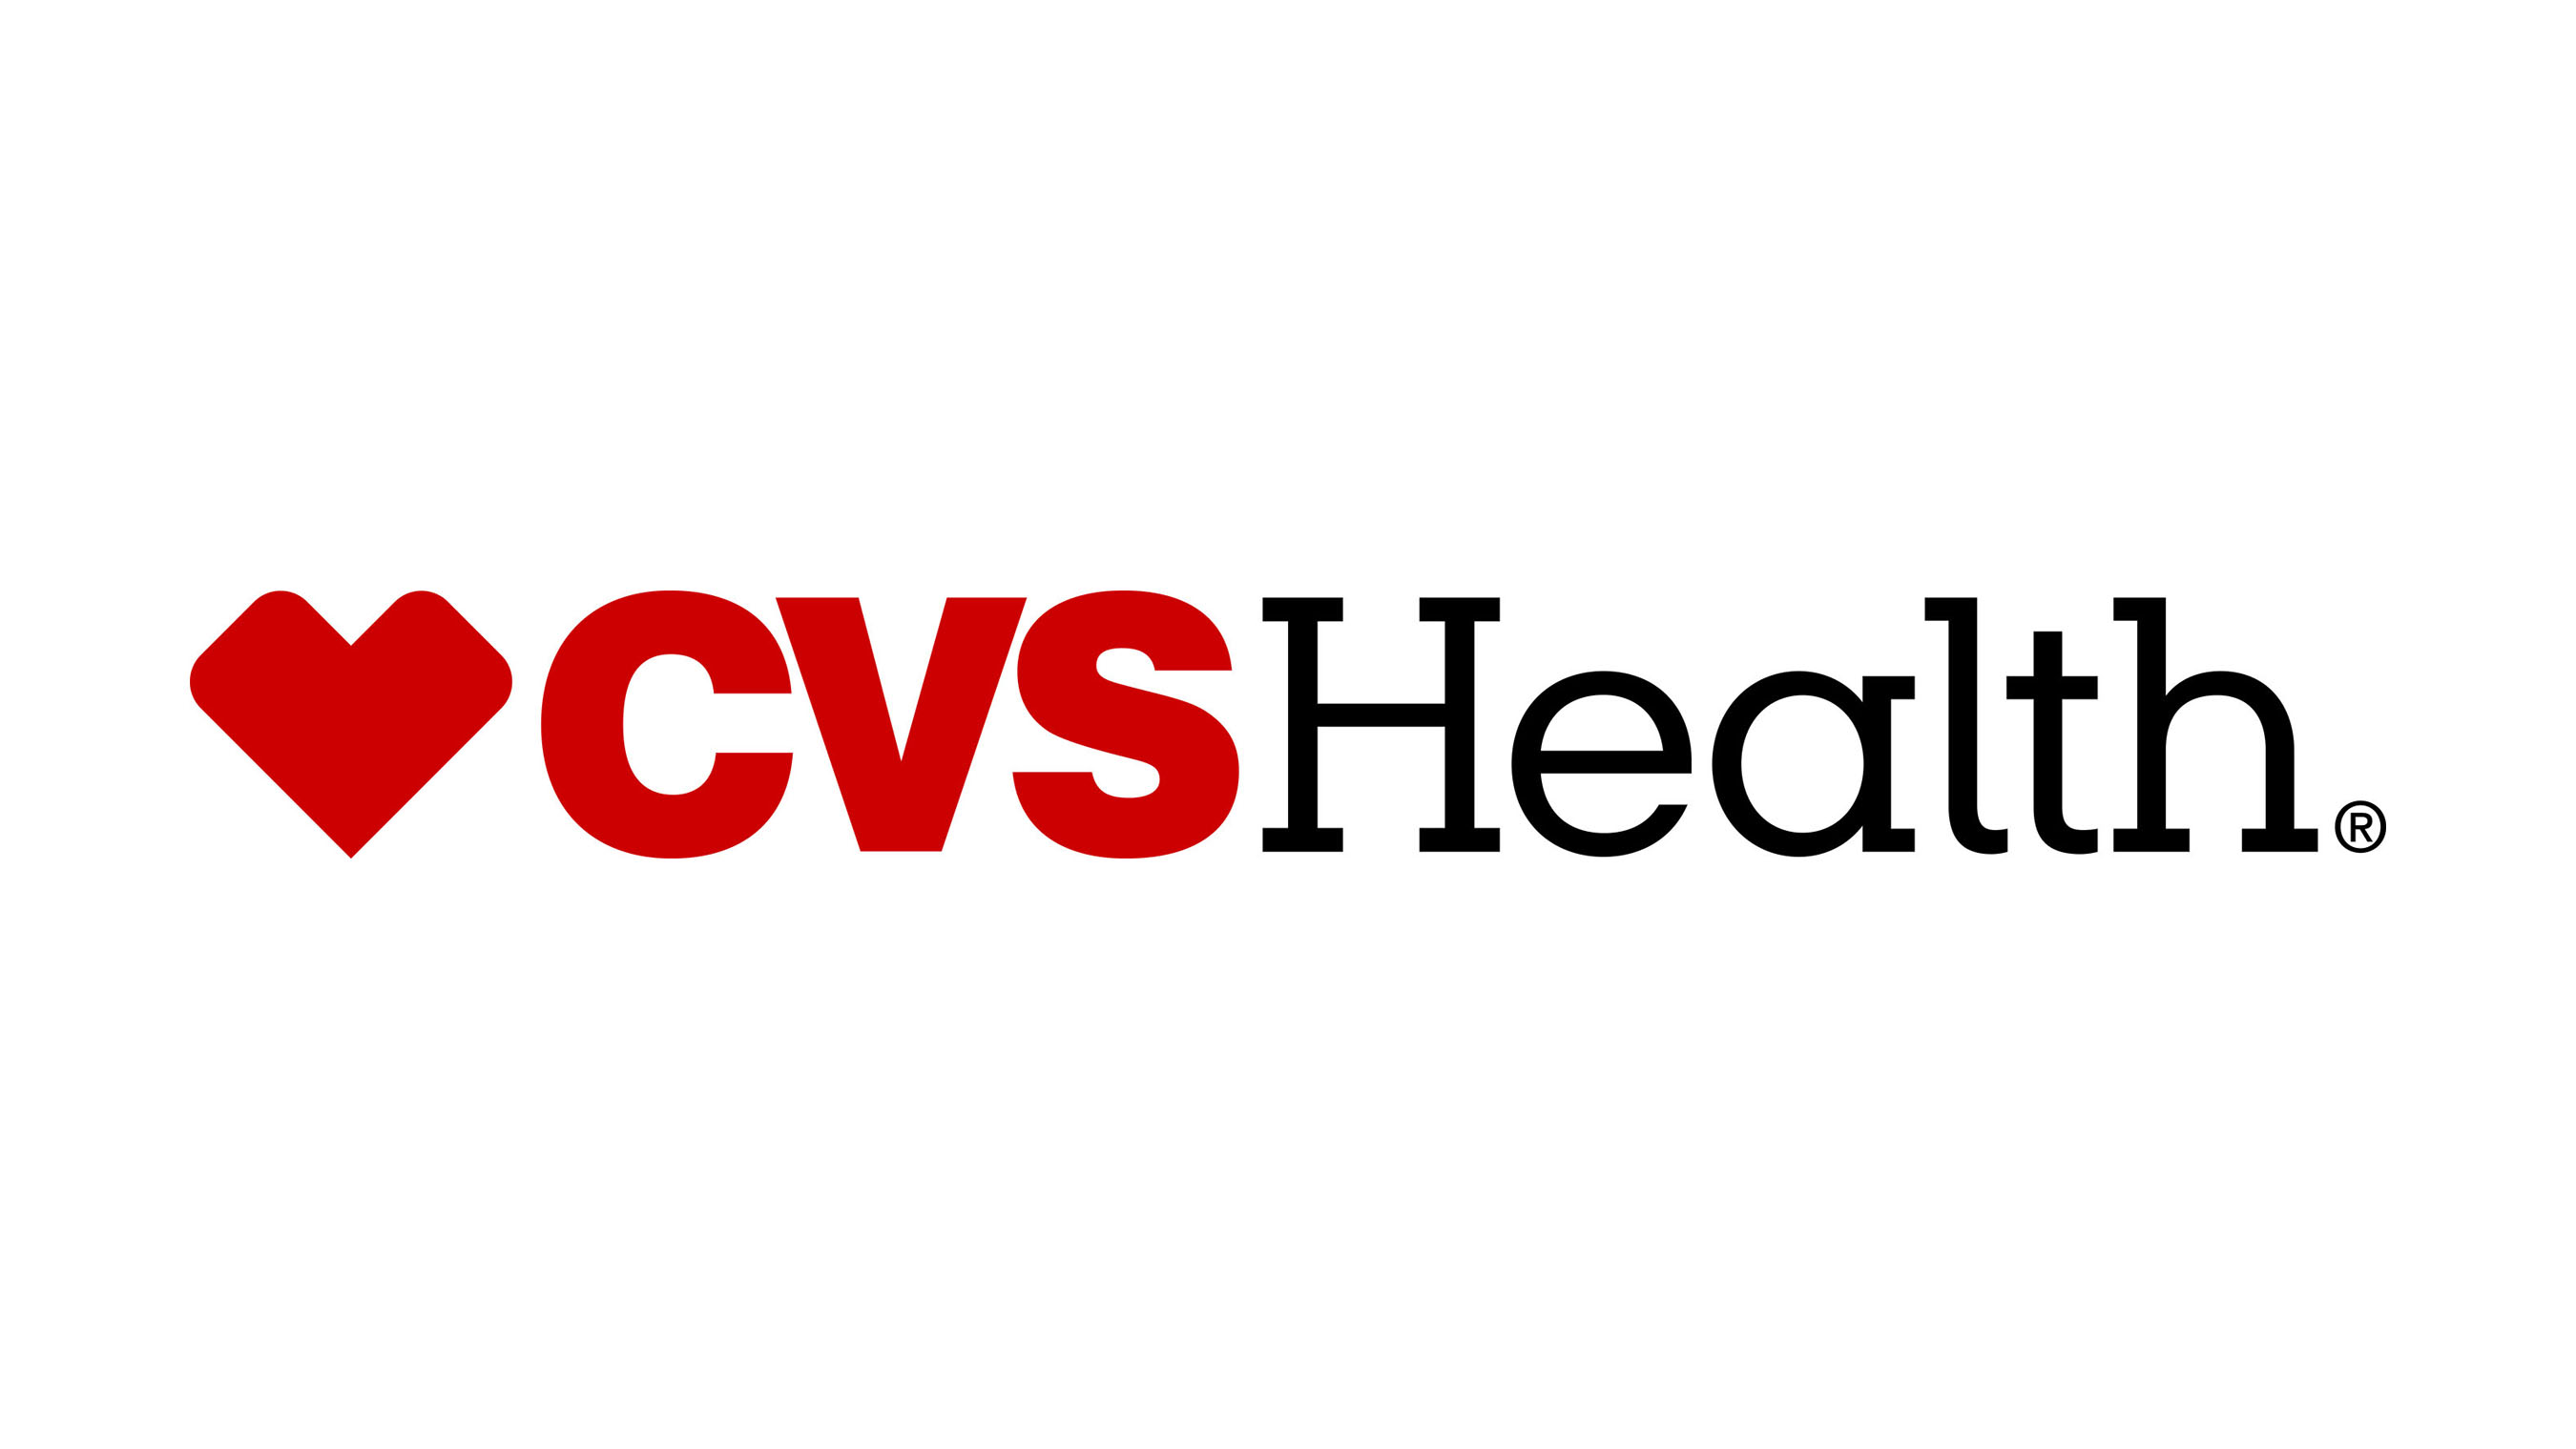 cvs health completes acquisition of aetna